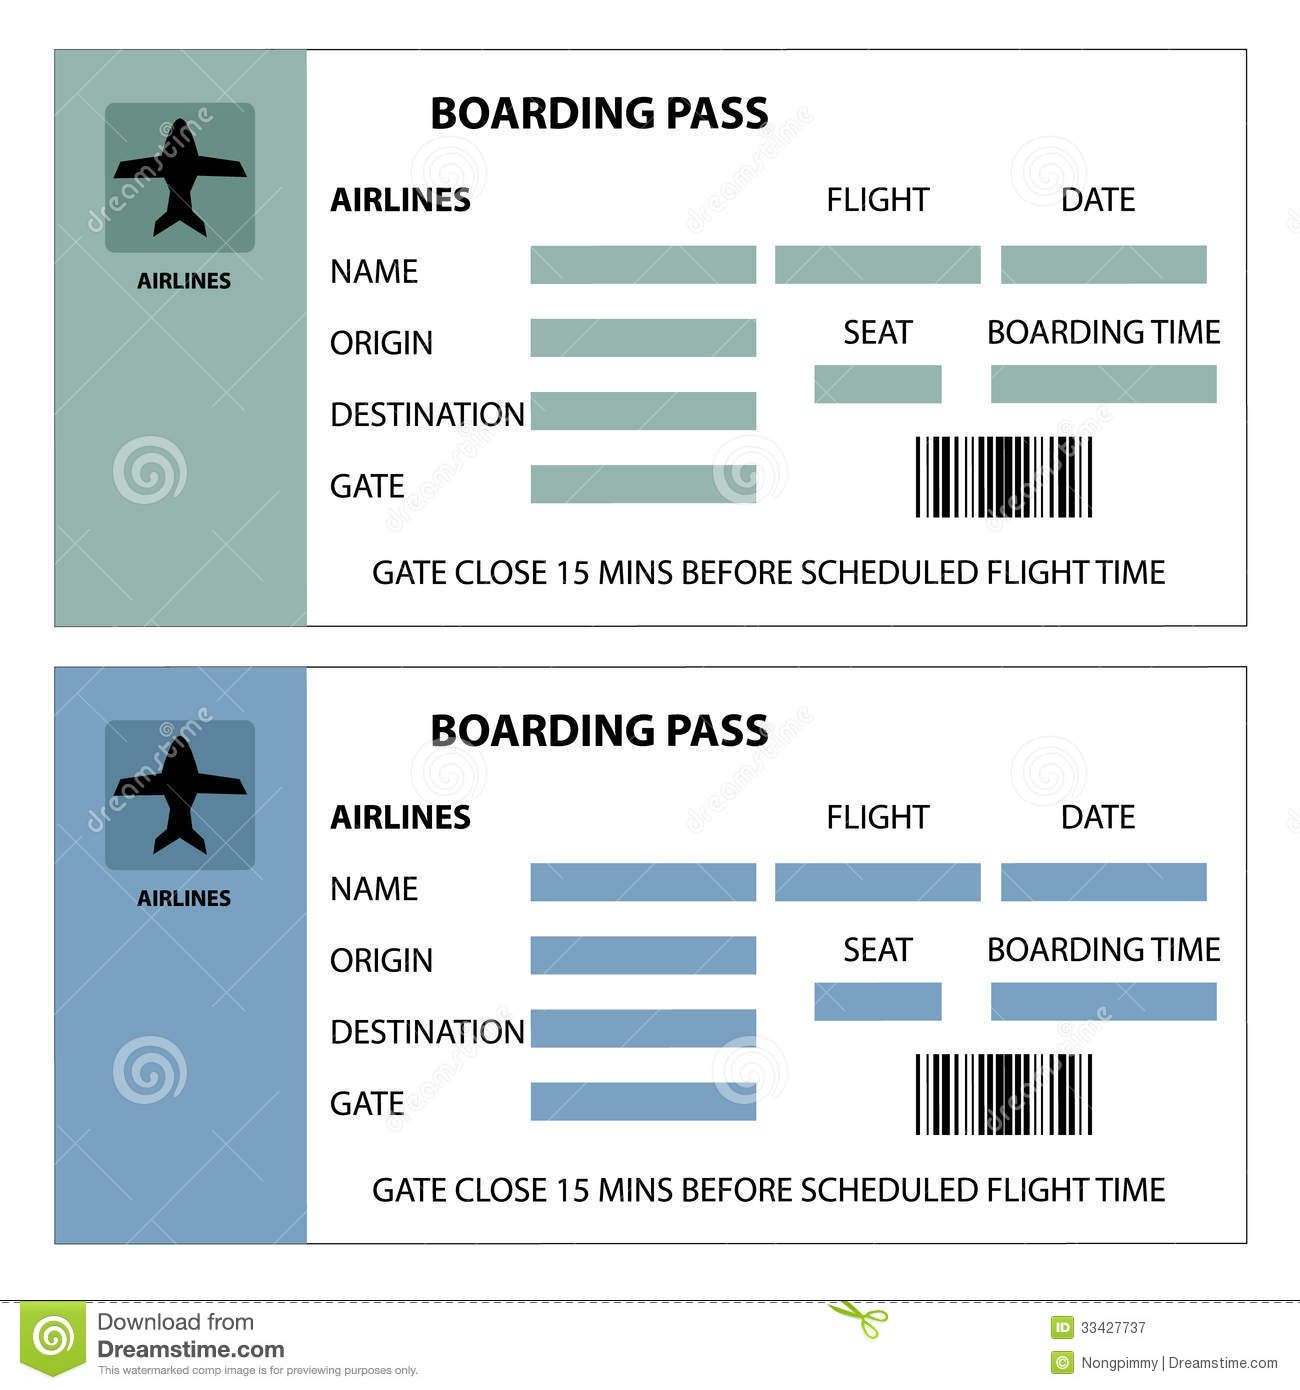 Boarding Pass Royalty Free Stock Photography - Image: 33427737